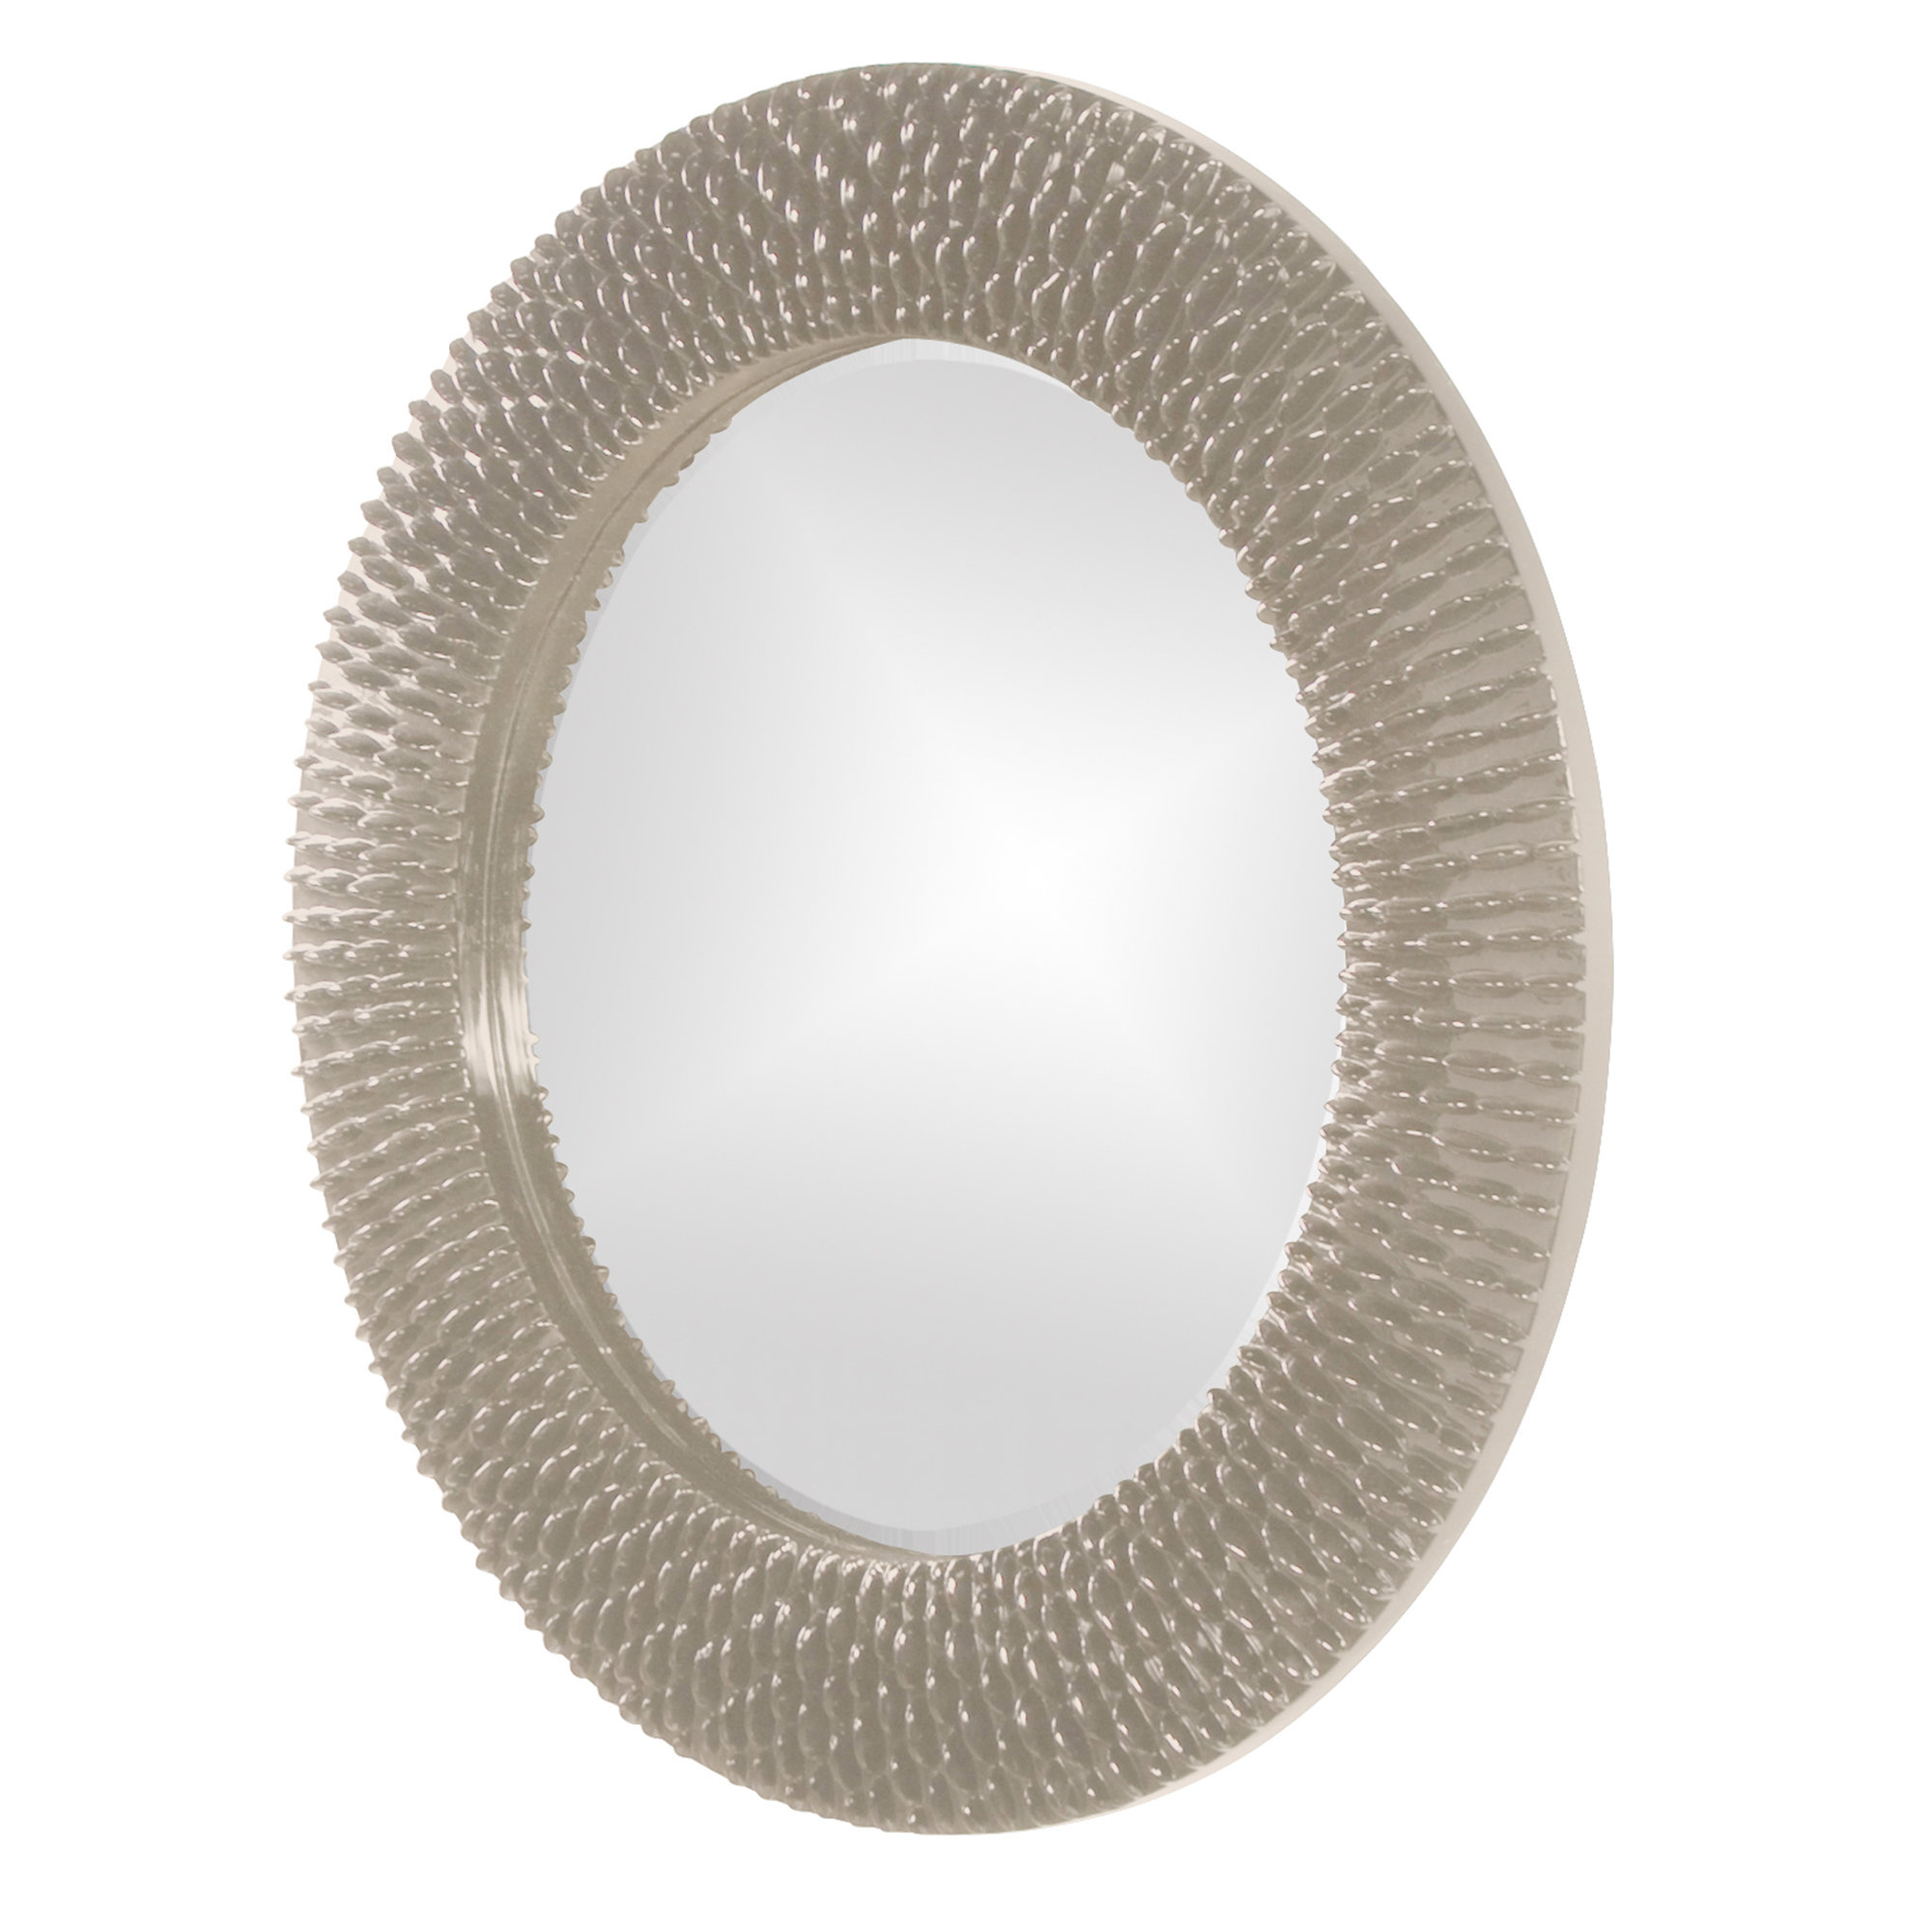 Hengelo Wall Mirror With Regard To Popular Point Reyes Molten Round Wall Mirrors (Gallery 13 of 20)